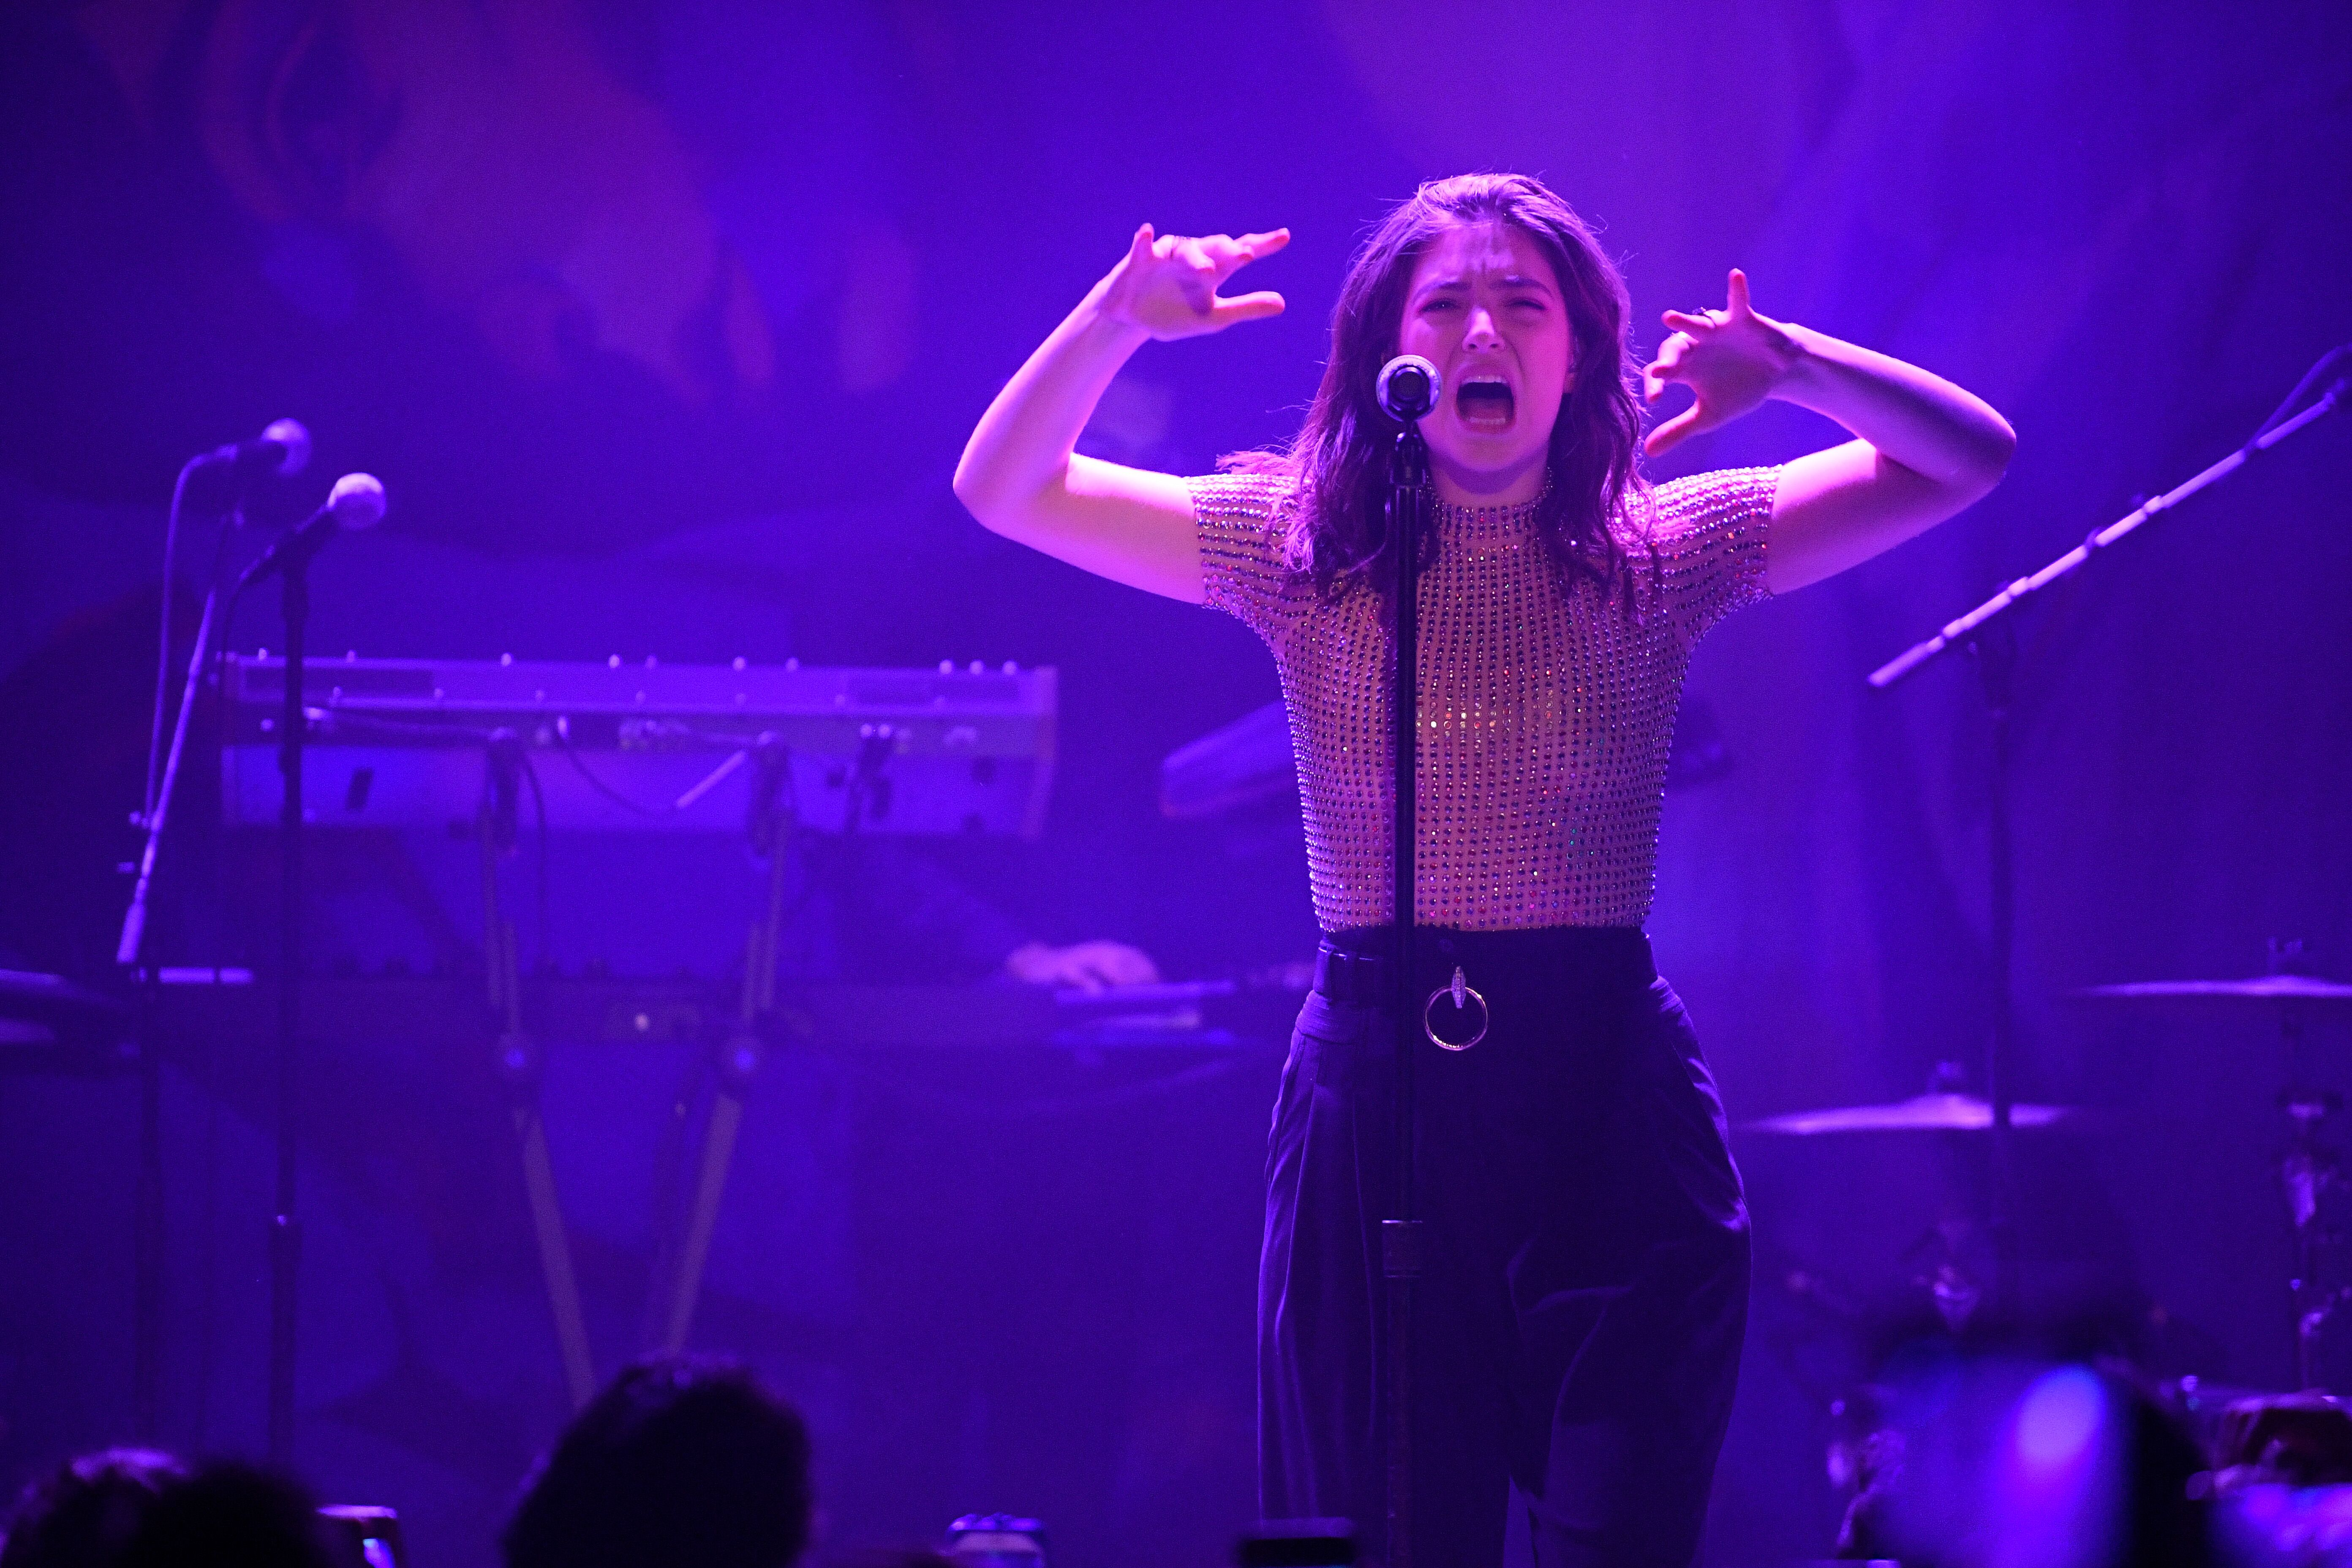 On Melodrama, Lorde enters a new era